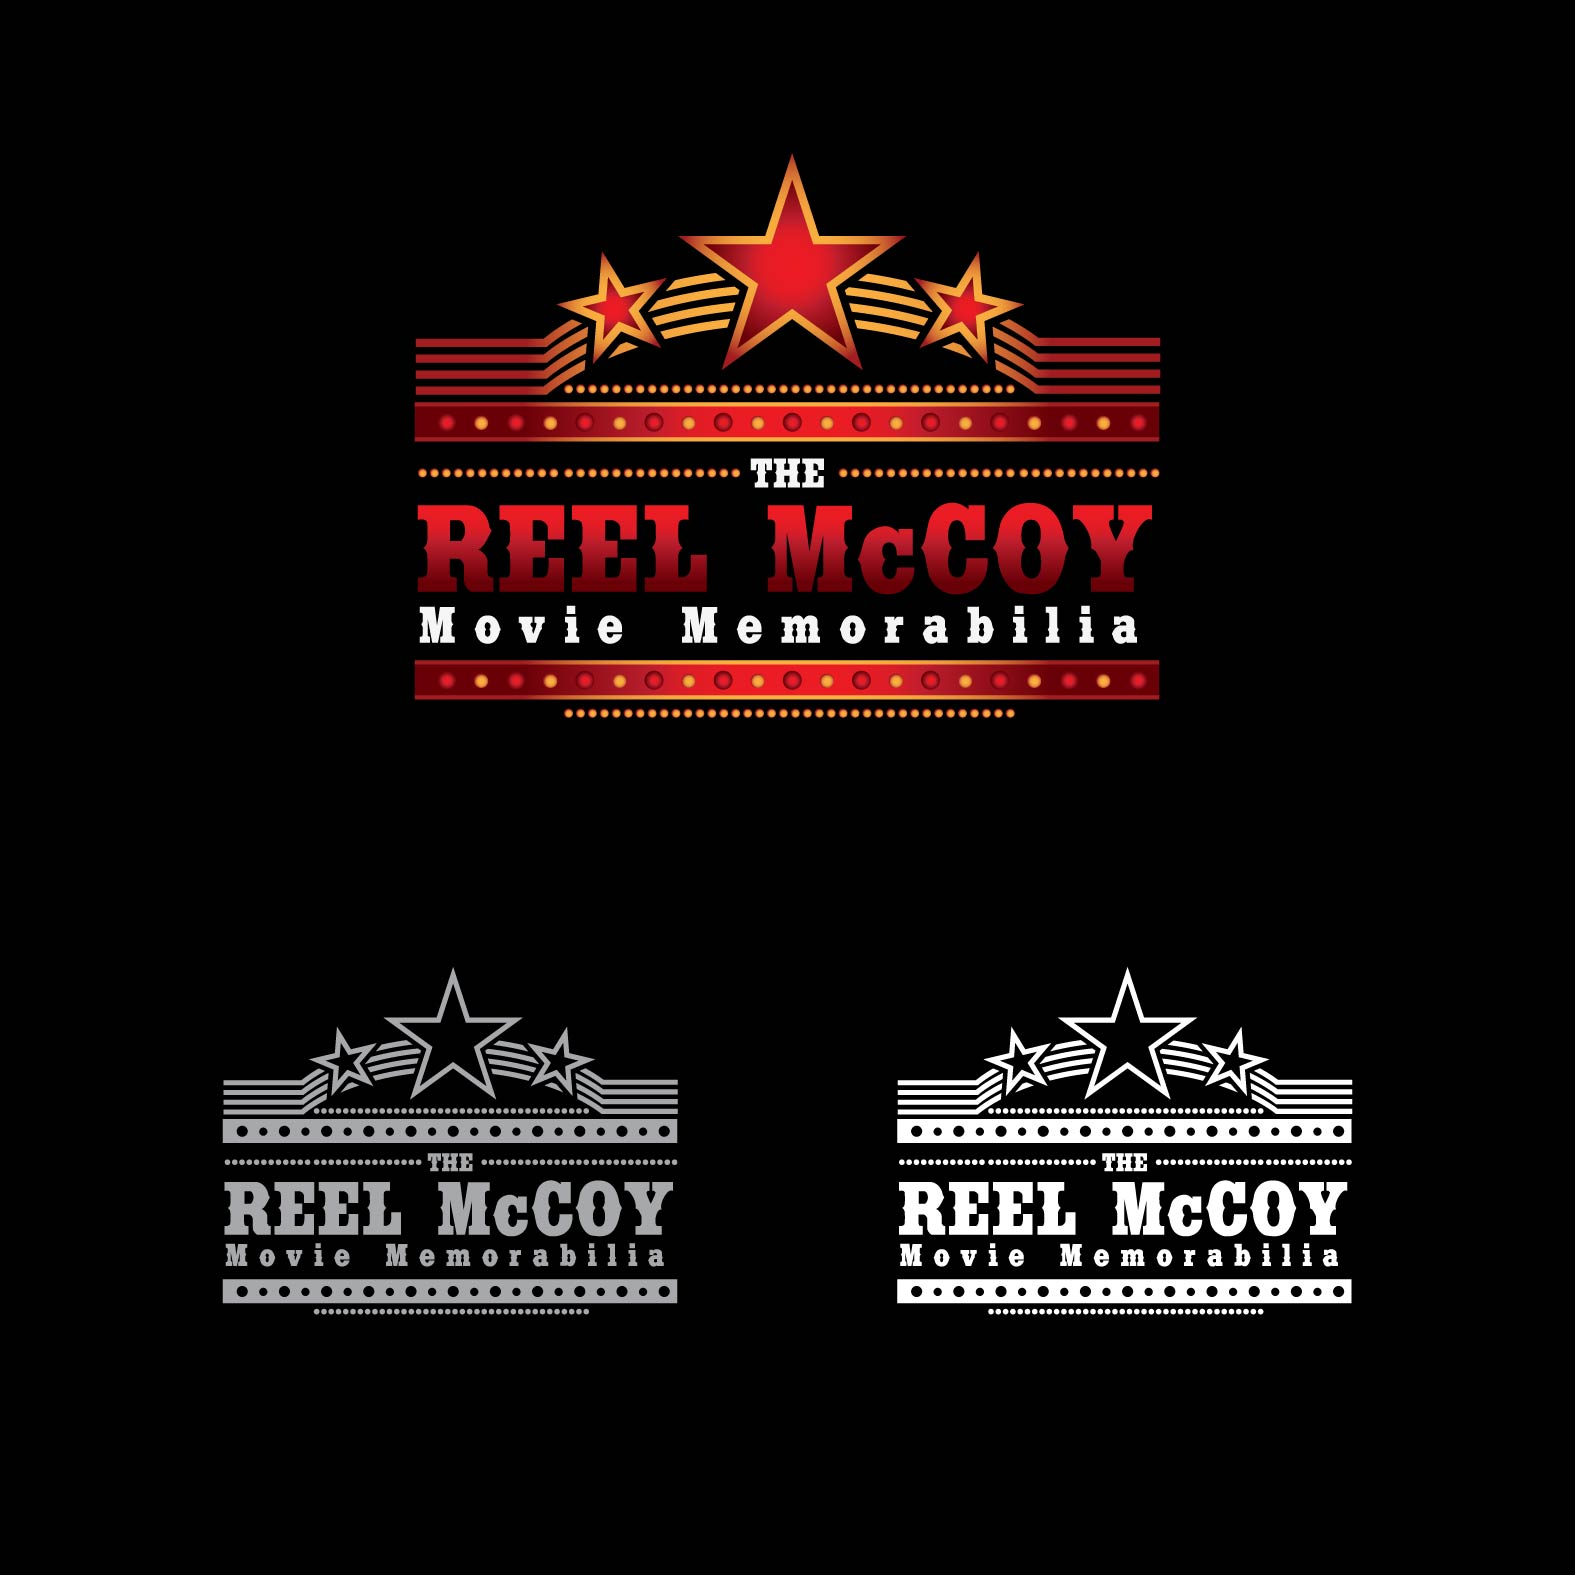 Logo Design by lagalag - Entry No. 21 in the Logo Design Contest Unique Logo Design Wanted for The Reel McCoy Movie Memorabilia.